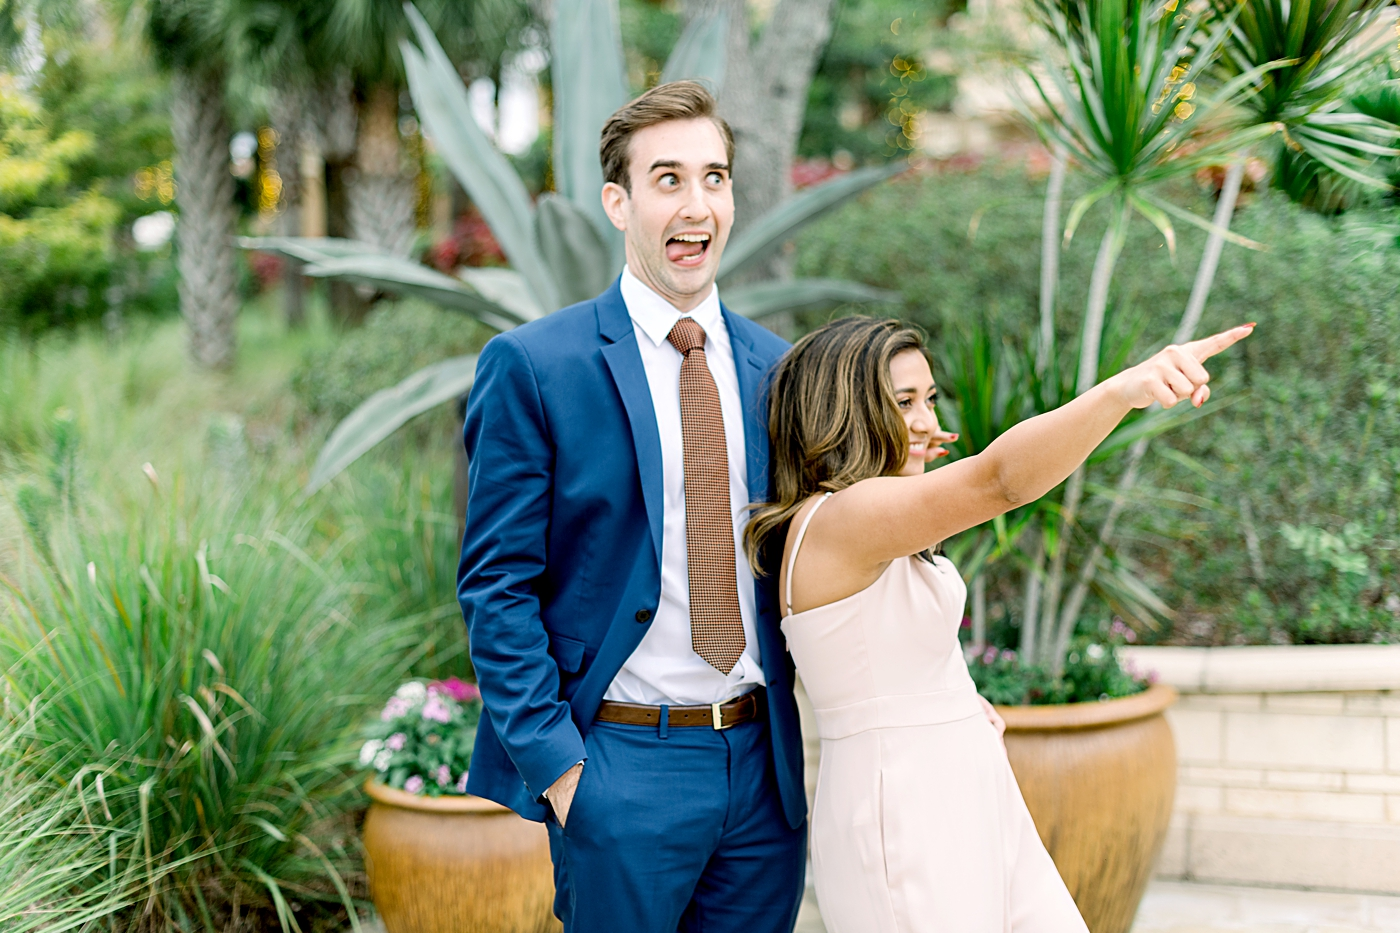 college sweethearts engaged